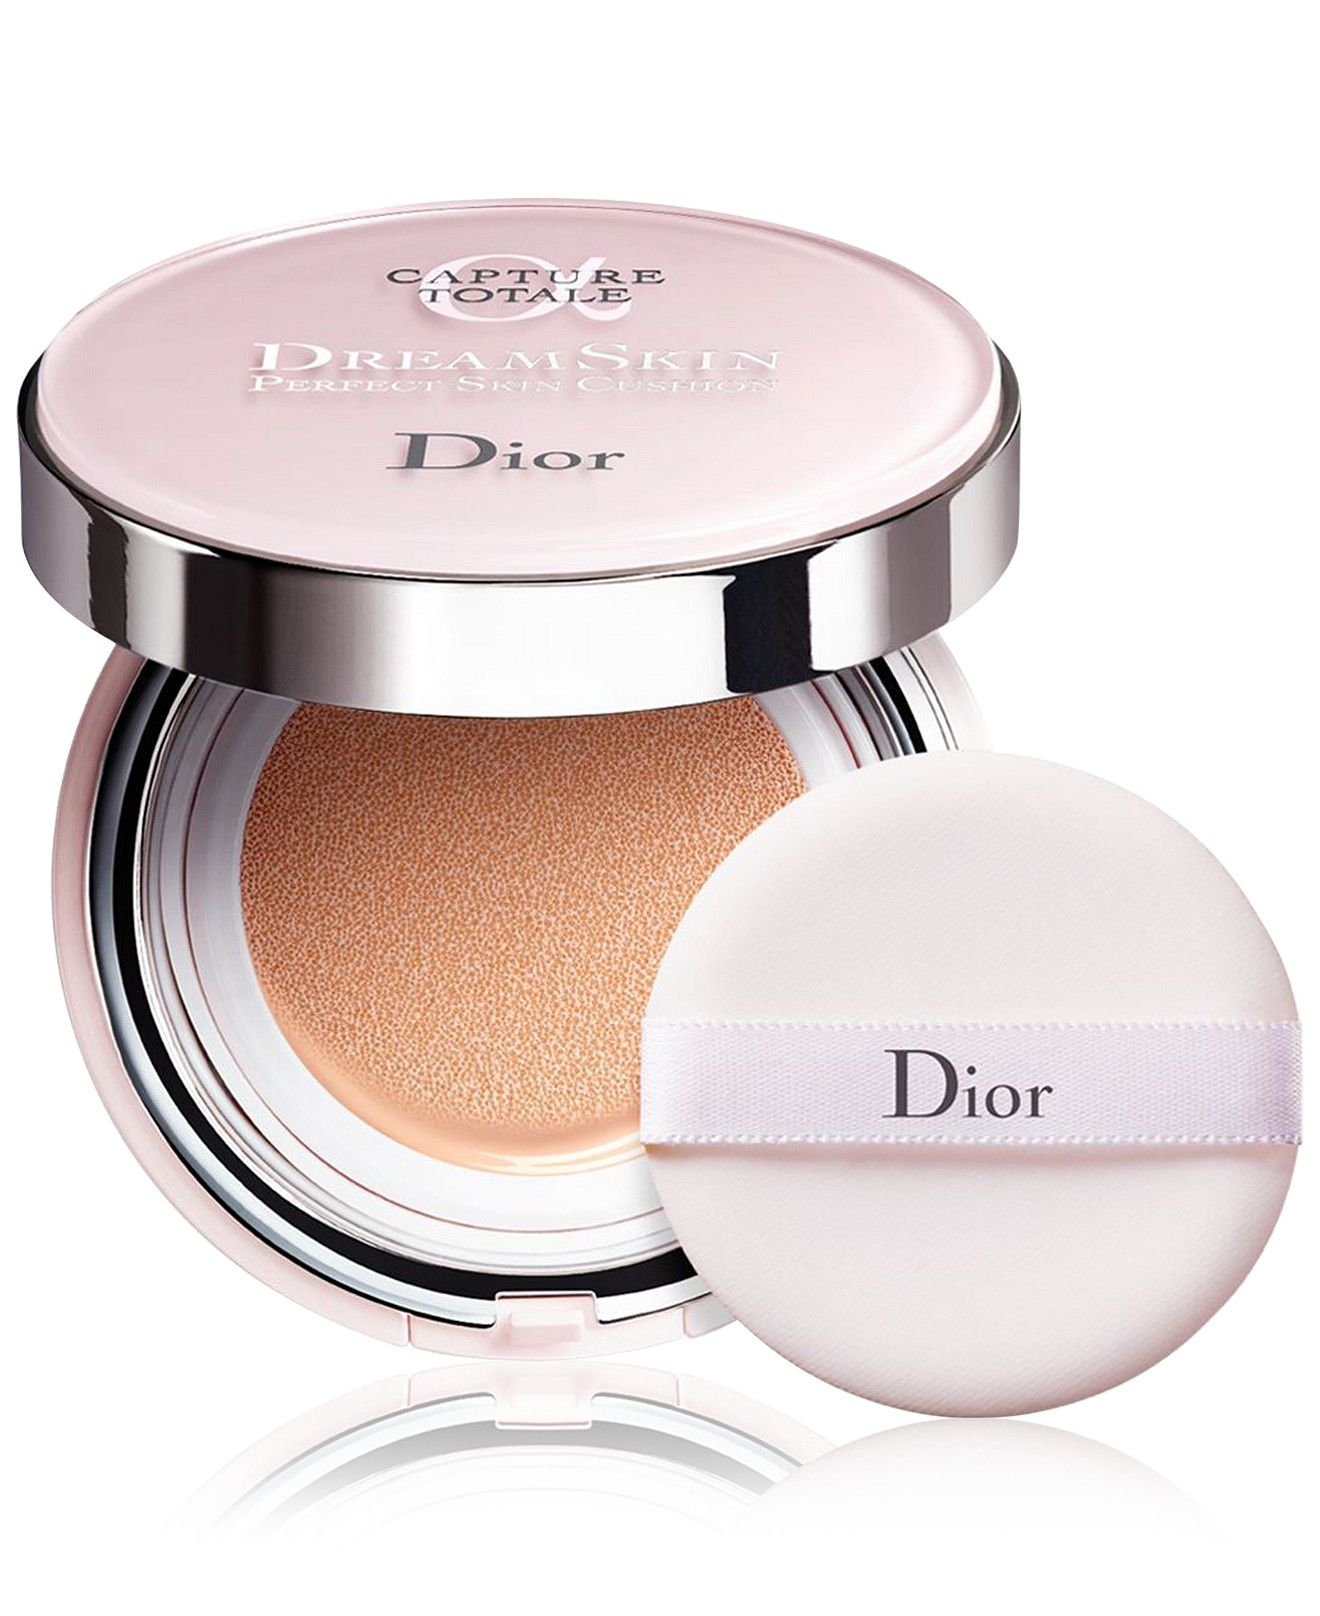 Dior Capture Totale Dreamskin Perfect Skin Cushion Broad Spectrum Spf 50 0 5 Oz Reviews Foundation Beauty Macy S Dior Capture Totale Dior Makeup Dior Beauty